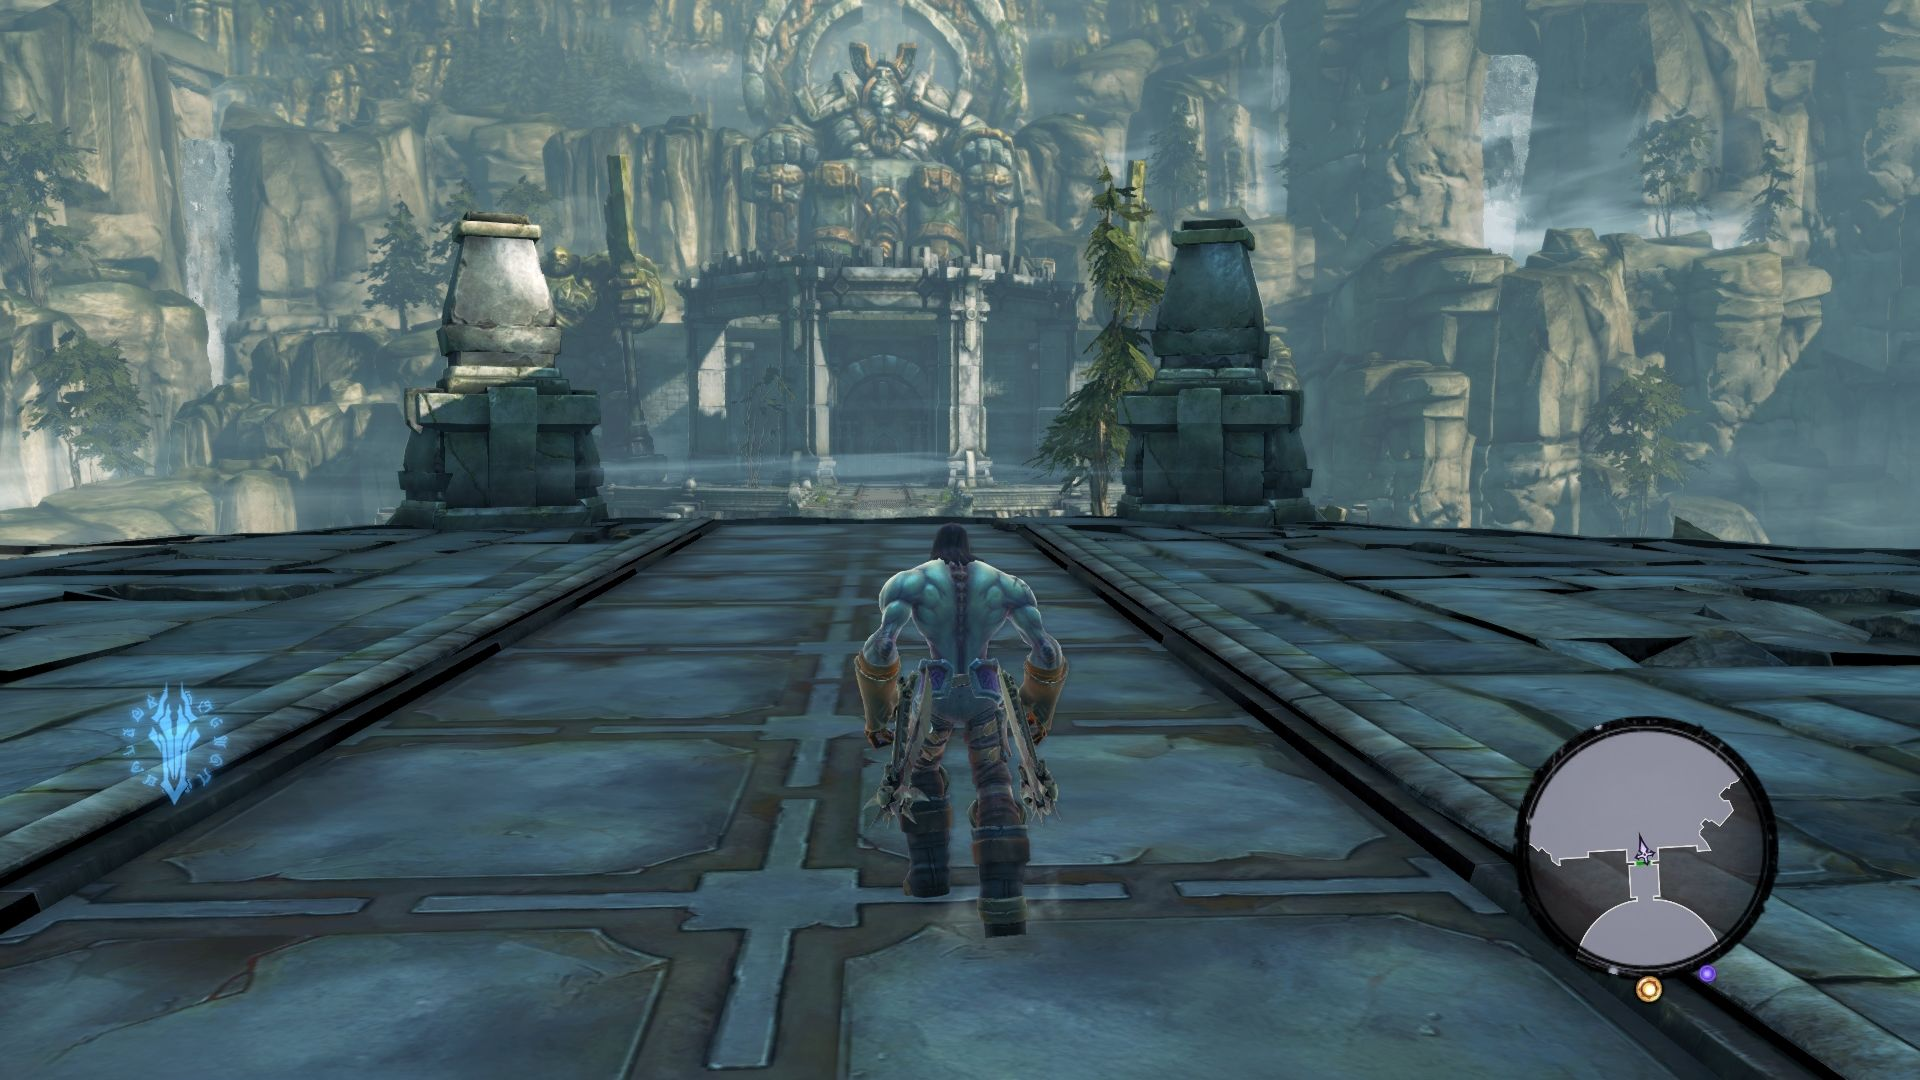 Darksiders II Windows The neutral area provides various activities for player to participate in.